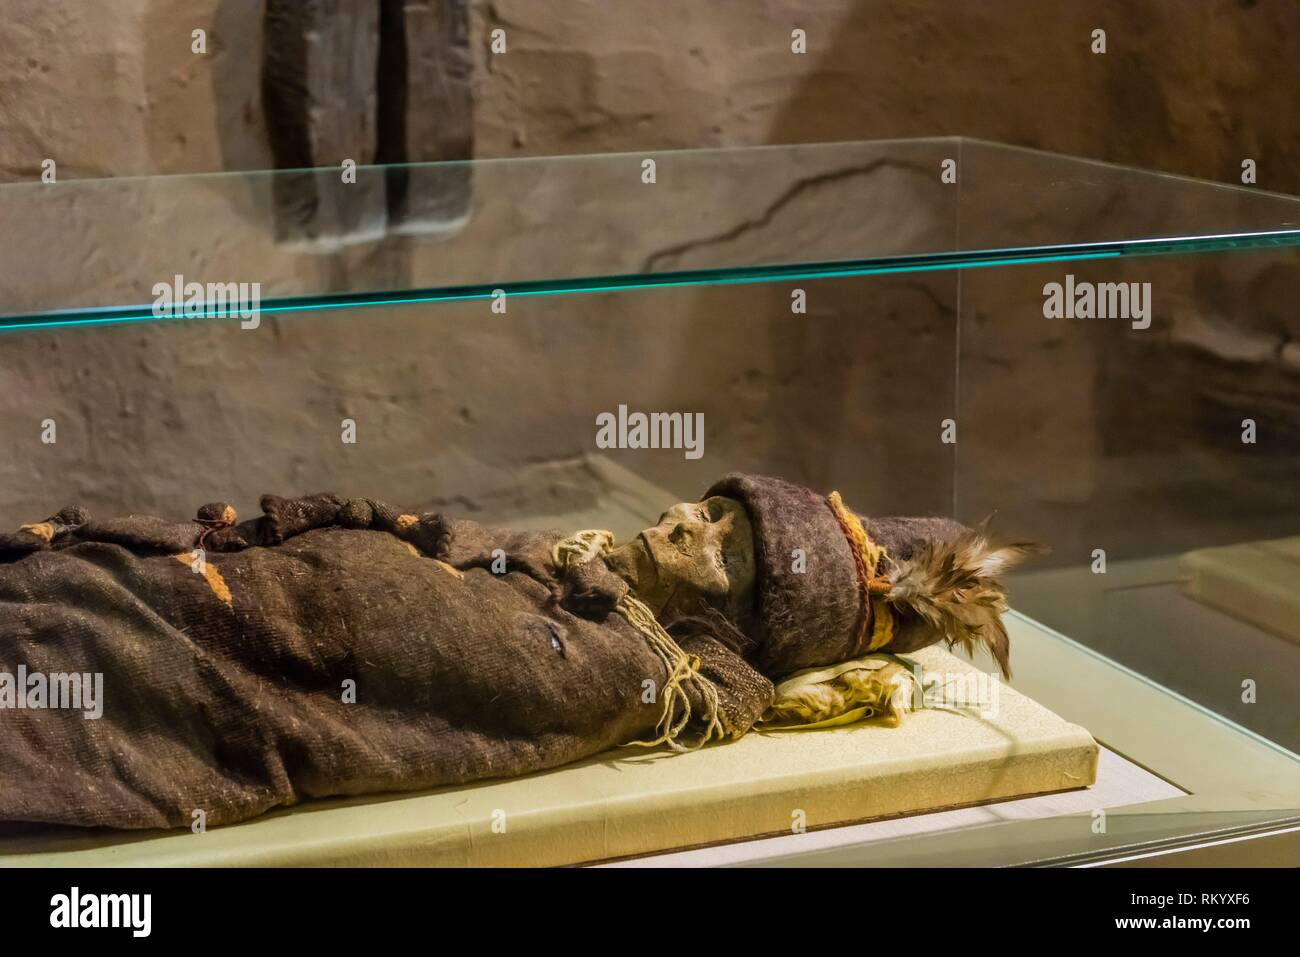 Perfectly preserved mummies retrieved from burial sites in the Taklamakan Desert on display at the Xinjiang Museum, Urumqi, Xinjiang Province, China. - Stock Image